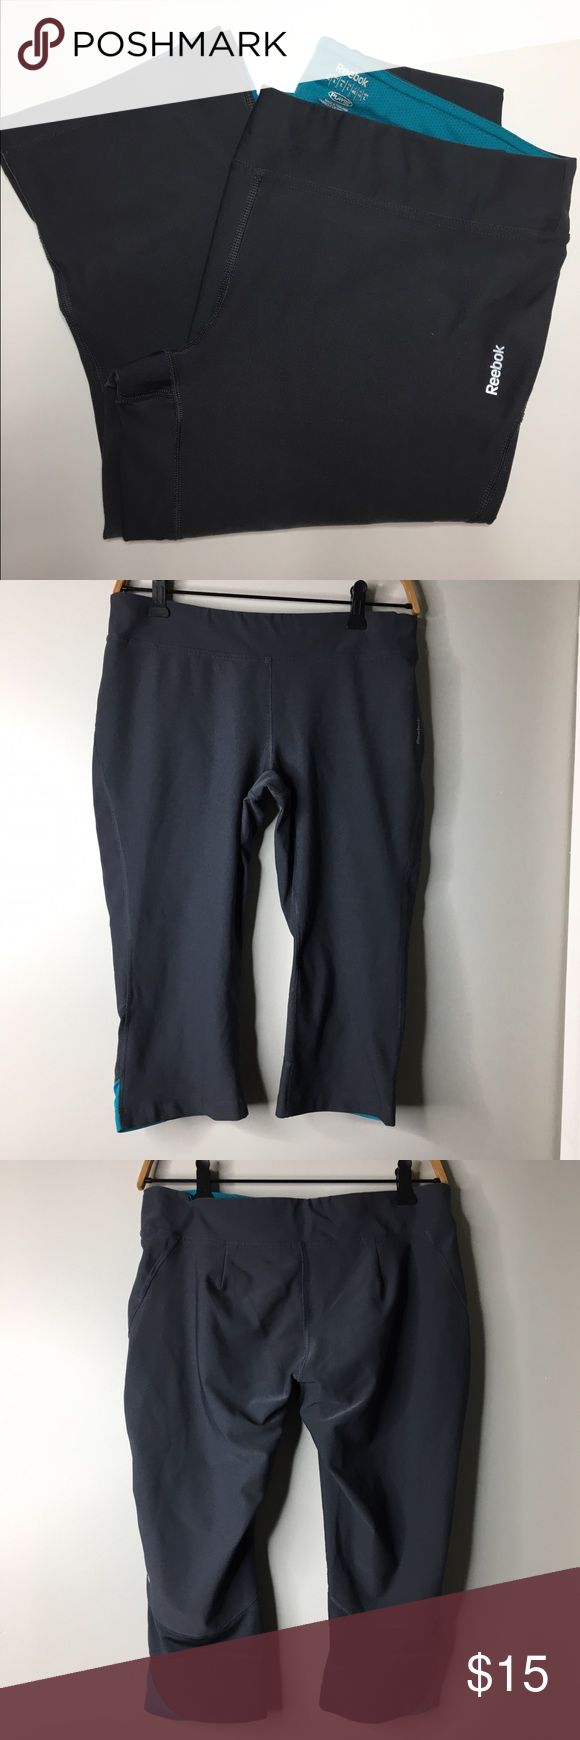 Reebok dark gray workout capris Pre-owned, like new dark gray Reebok workout Capri pants. Some of the pictures look black, but they are dark gray with blue accents. Size large. Reebok Pants Capris